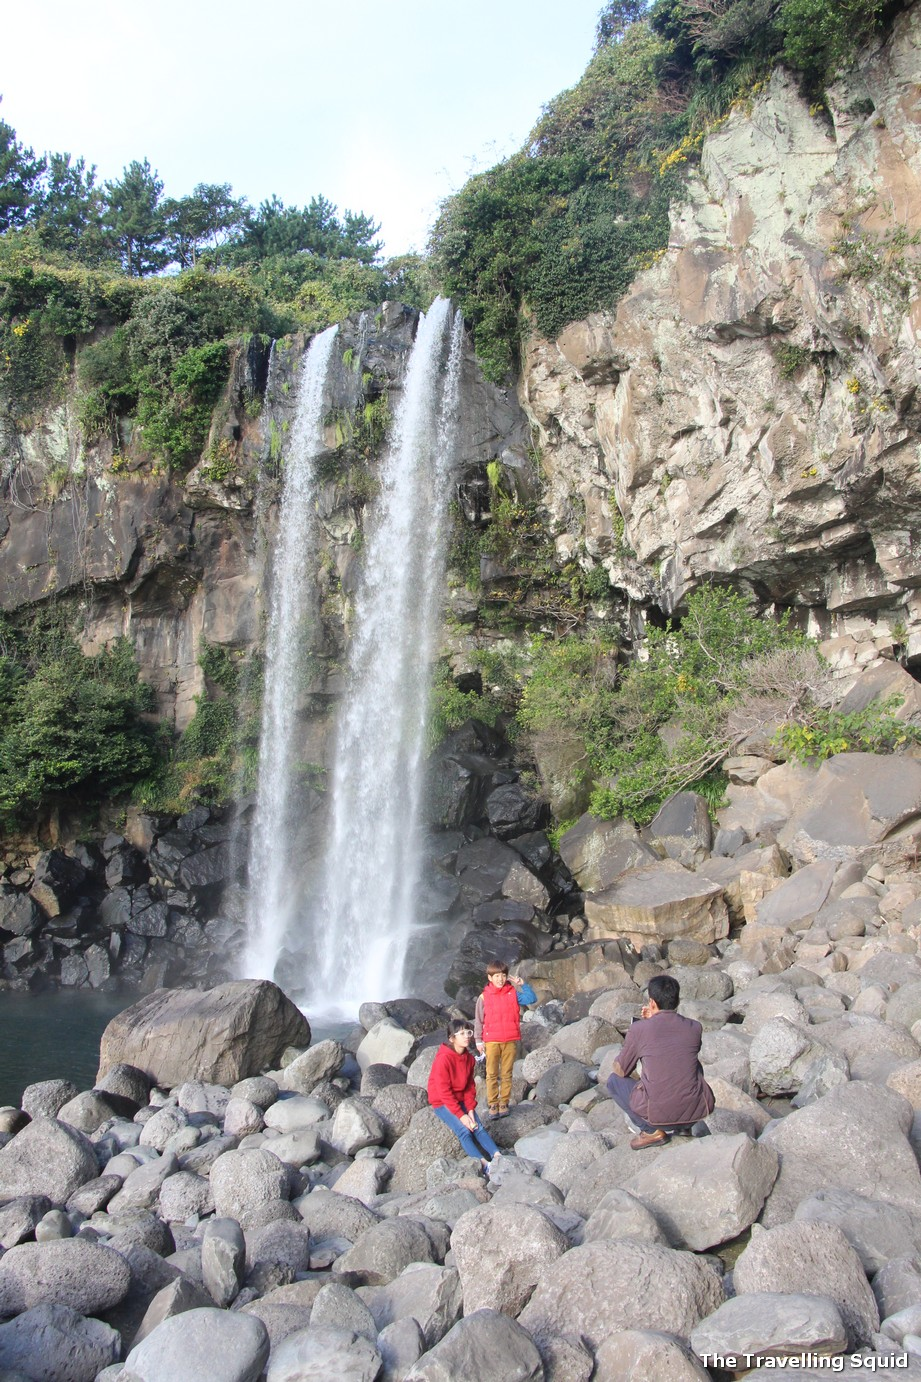 jeju jeongbang waterfall spend more time in Jeju or Seoul